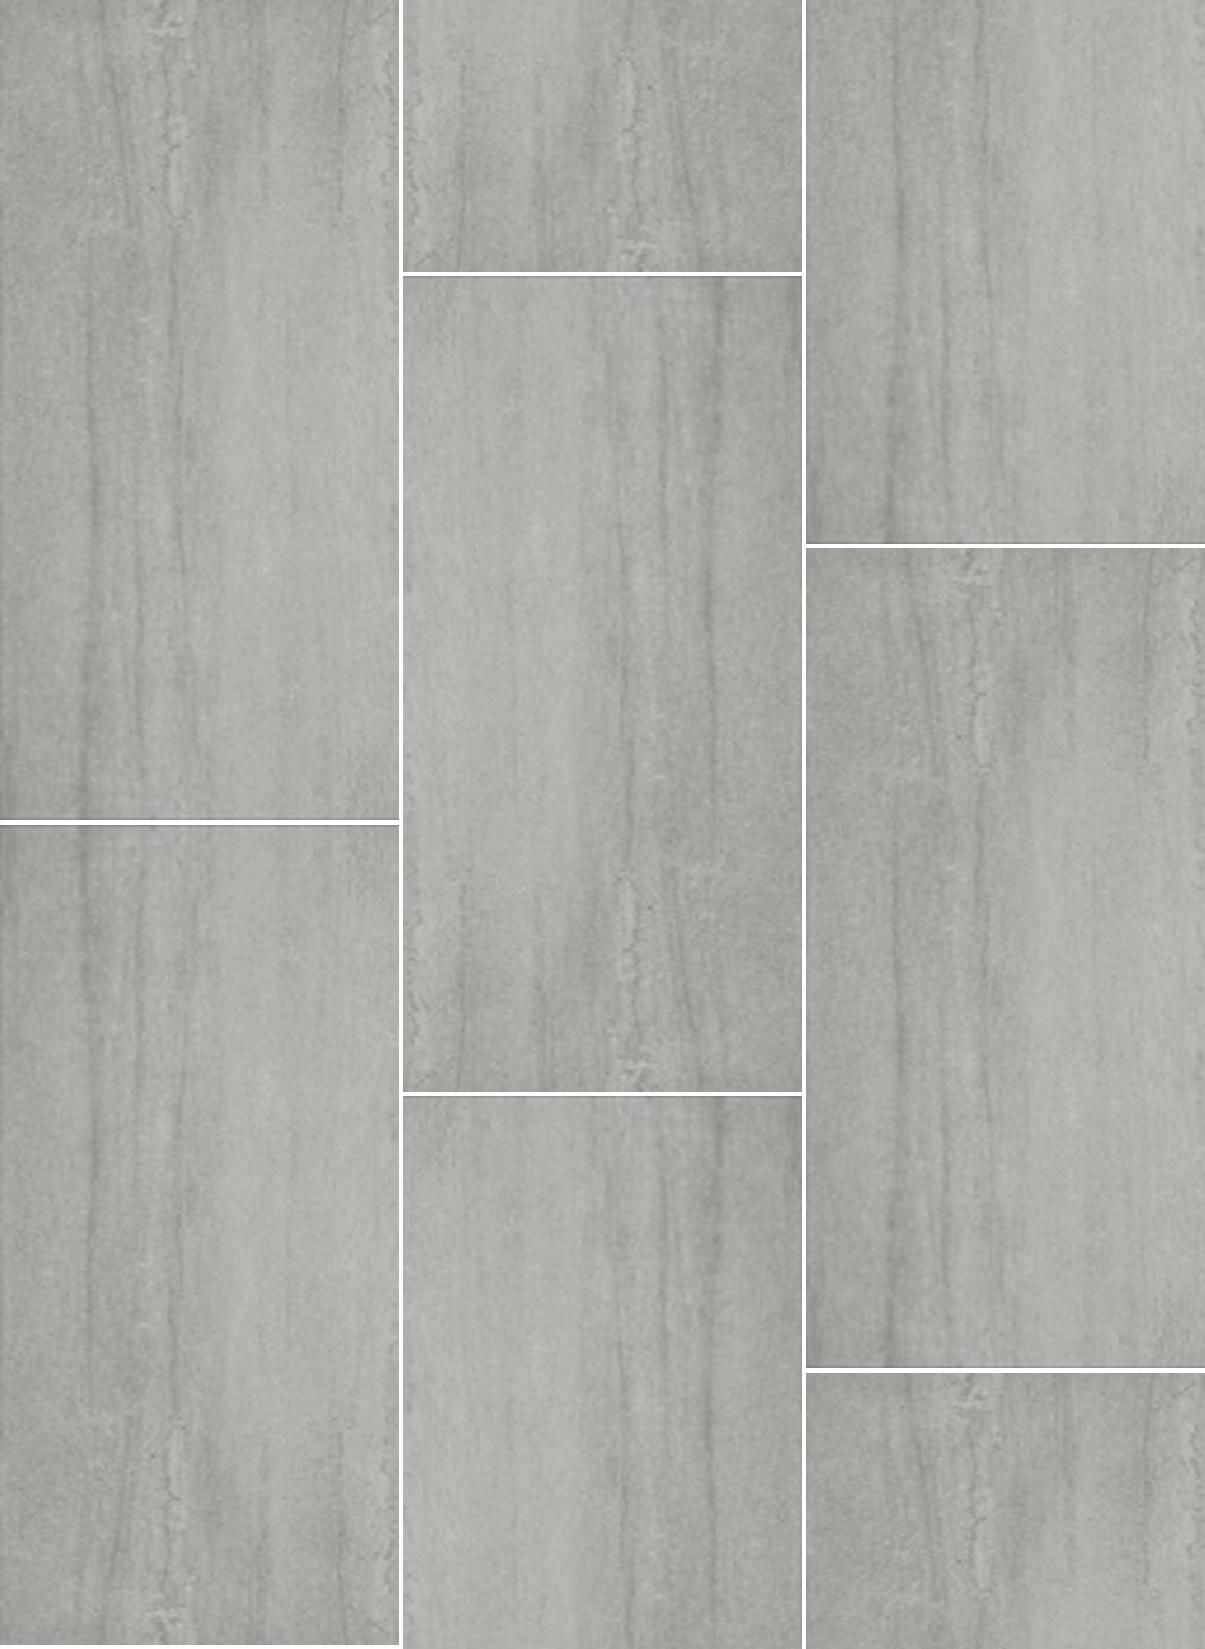 LGLimitlessDesign #Contest Grey 12×24 floor tile | Nick Miller ... for Modern Kitchen Floor Tiles Texture Seamless  197uhy